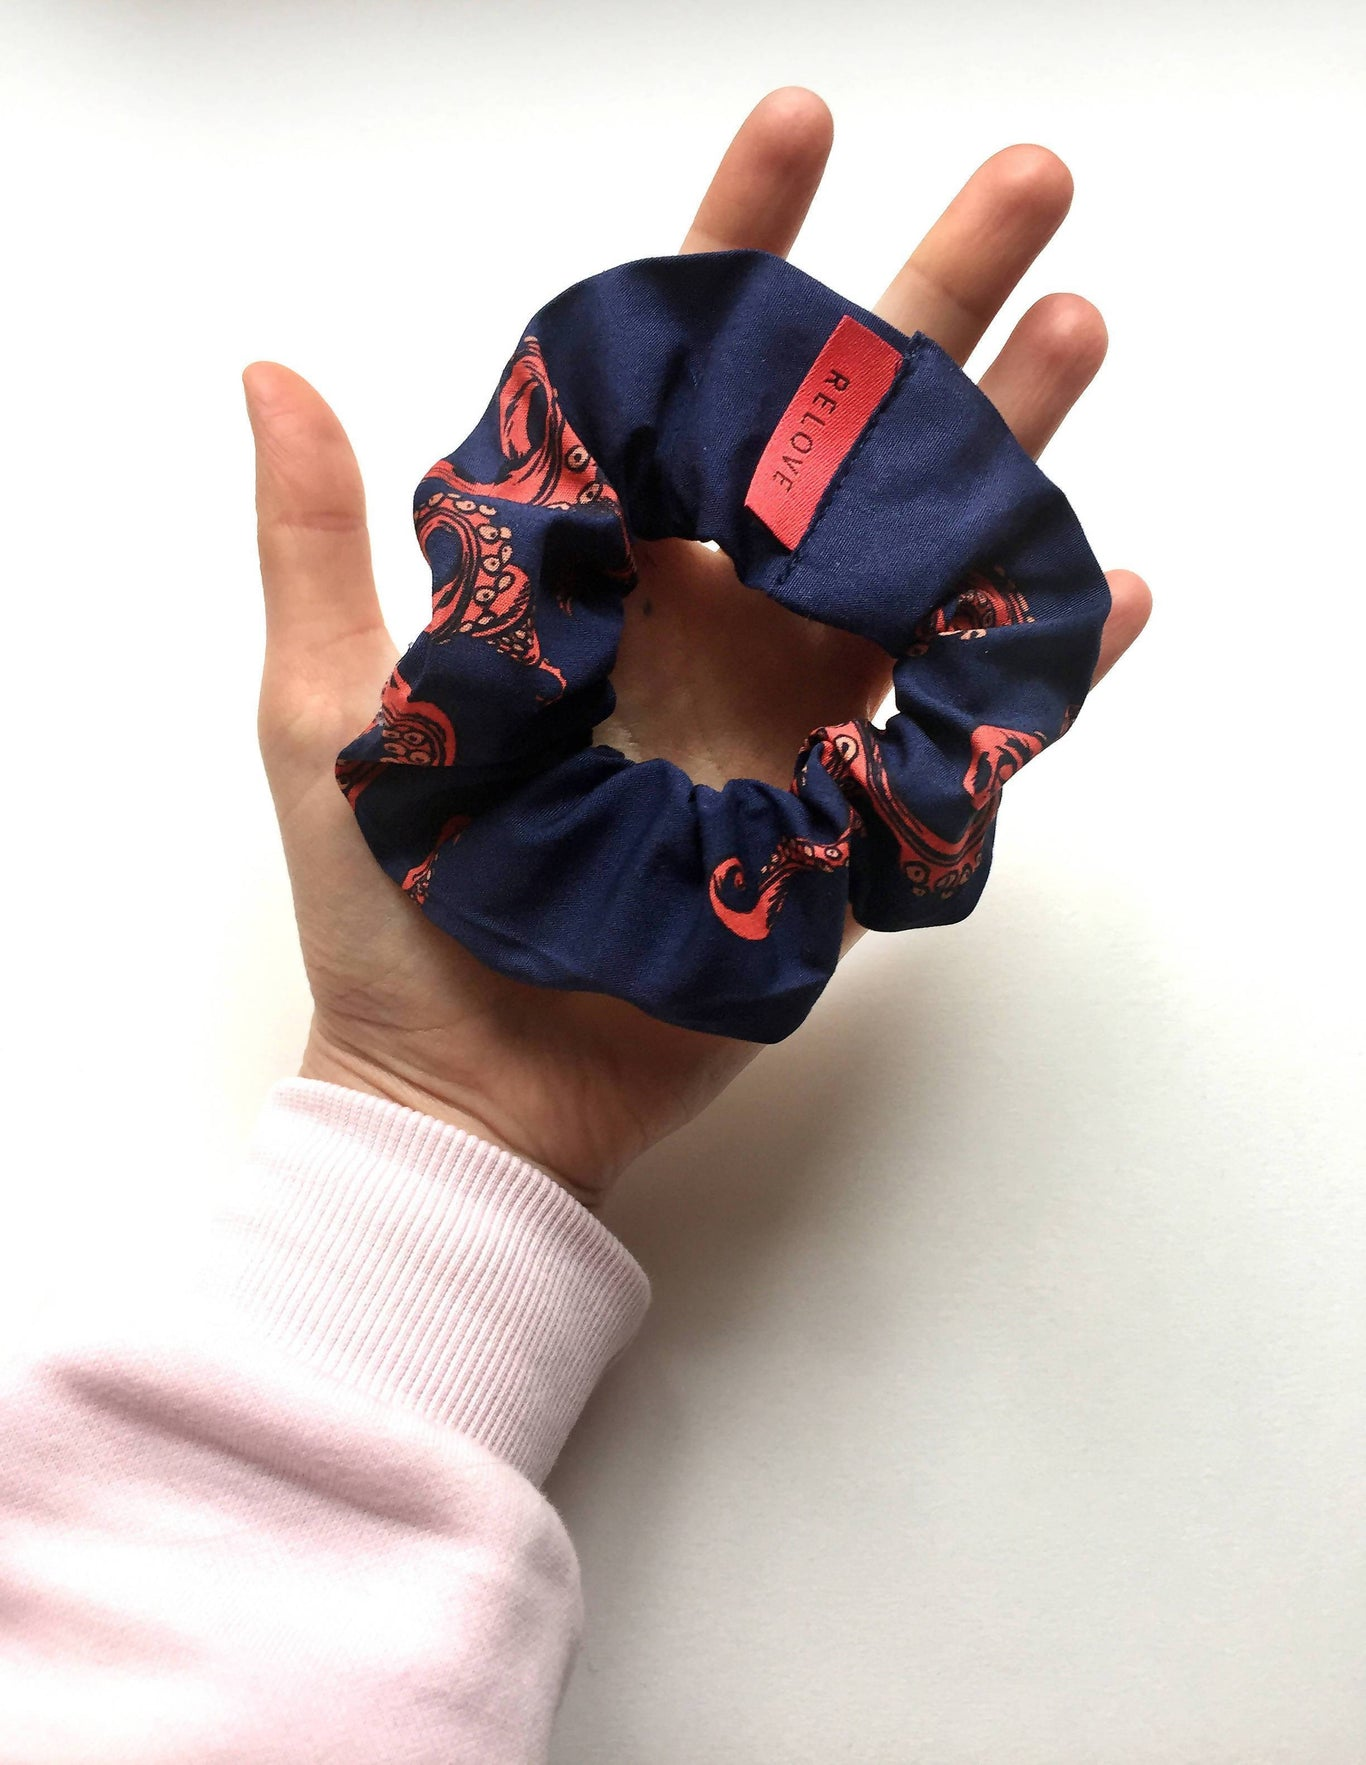 BLUE SCRUNCHIE from the RELOVE line